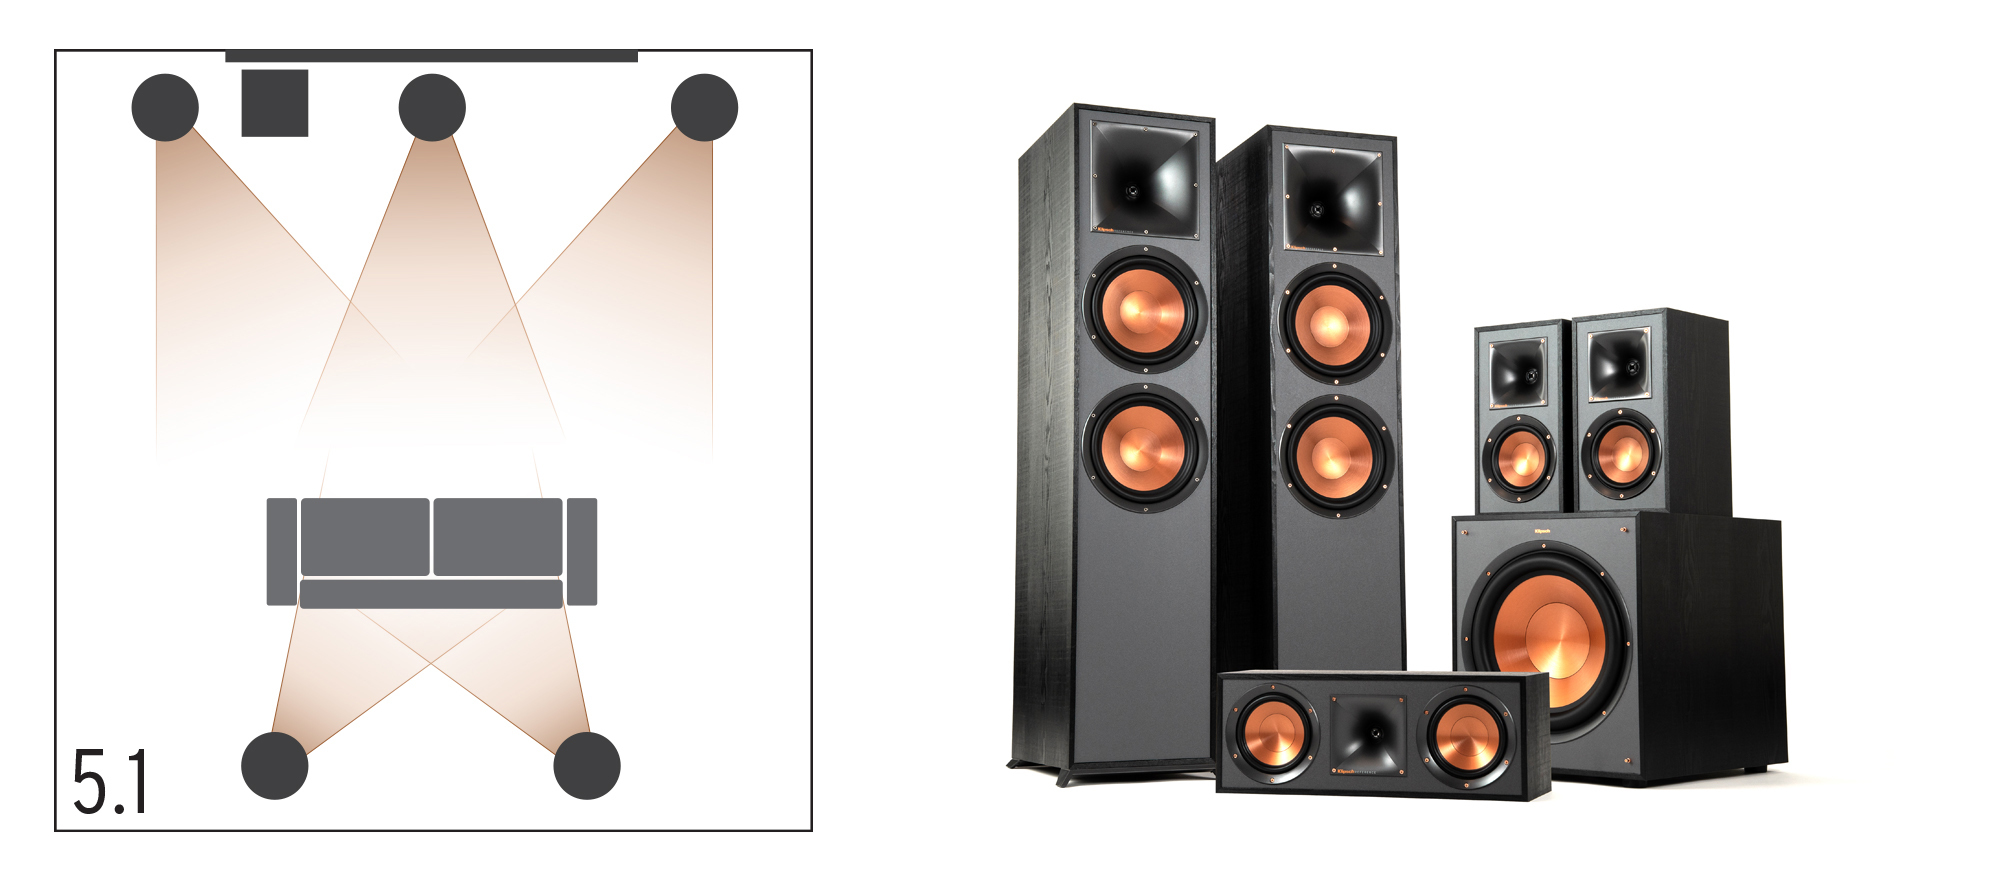 Klipsch Surround Sound 5.1 Home Theater Configuration